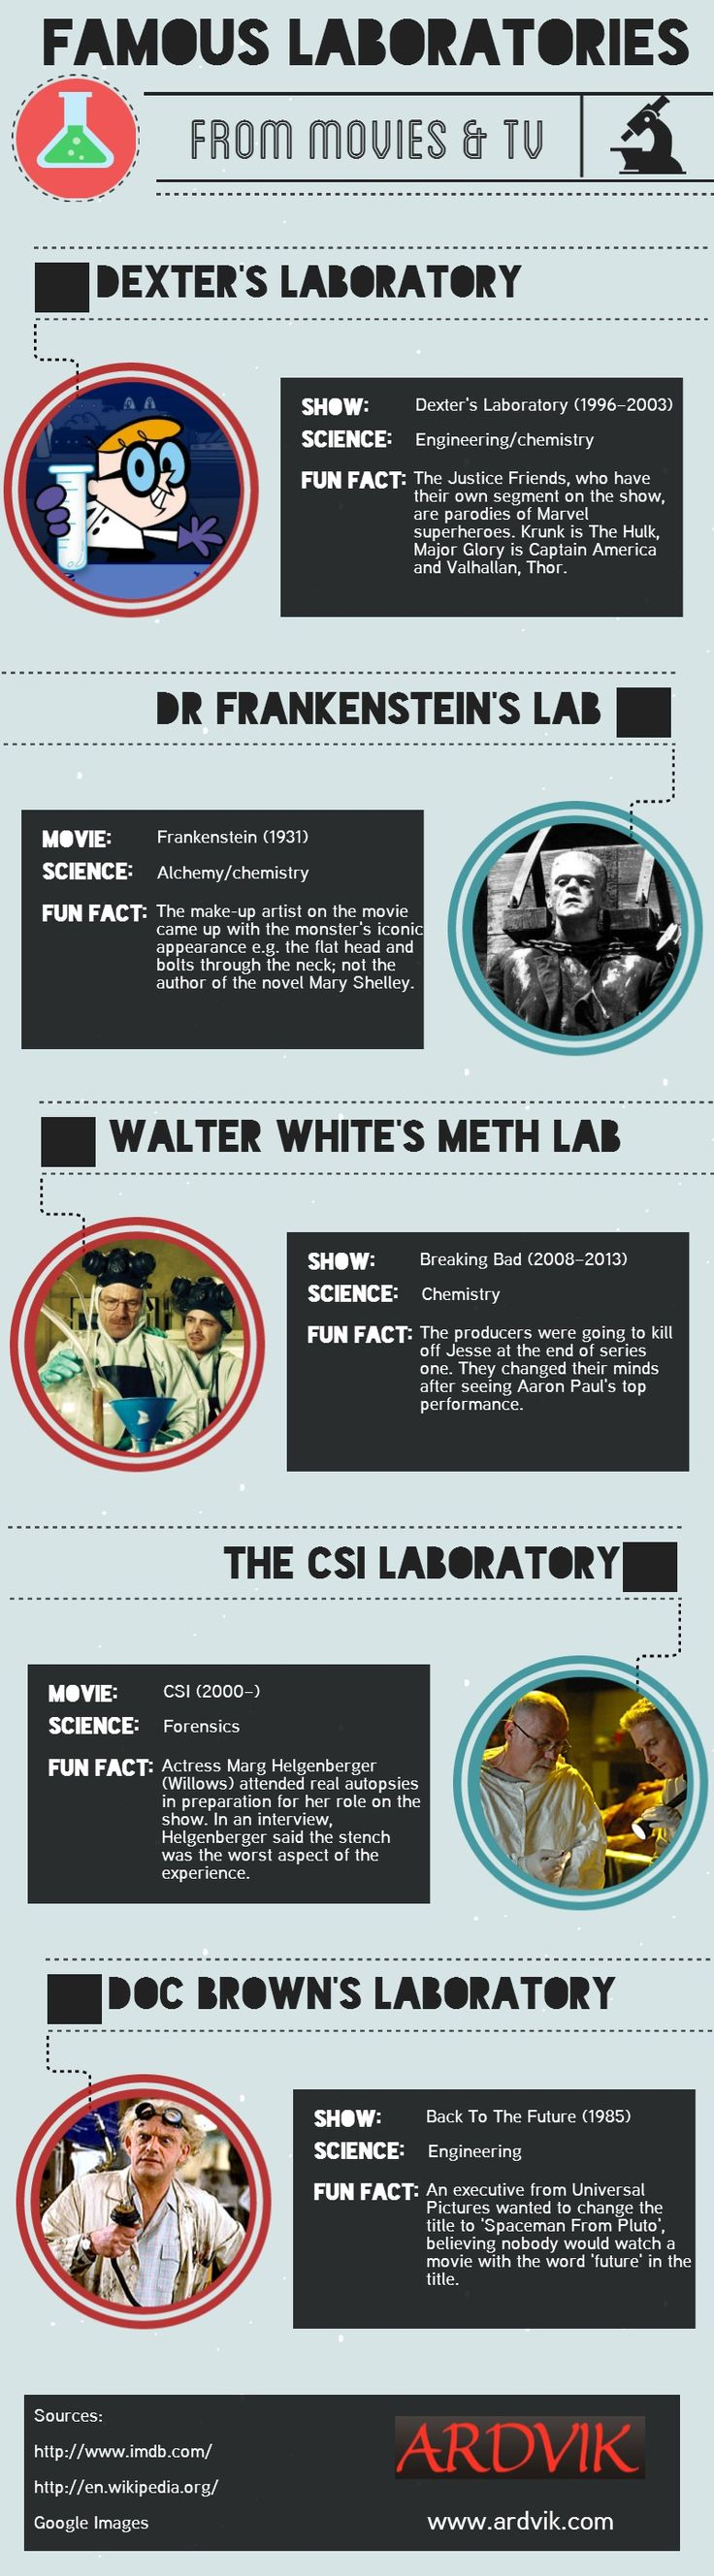 Famous Laboratories From Movies & Tv #infographic